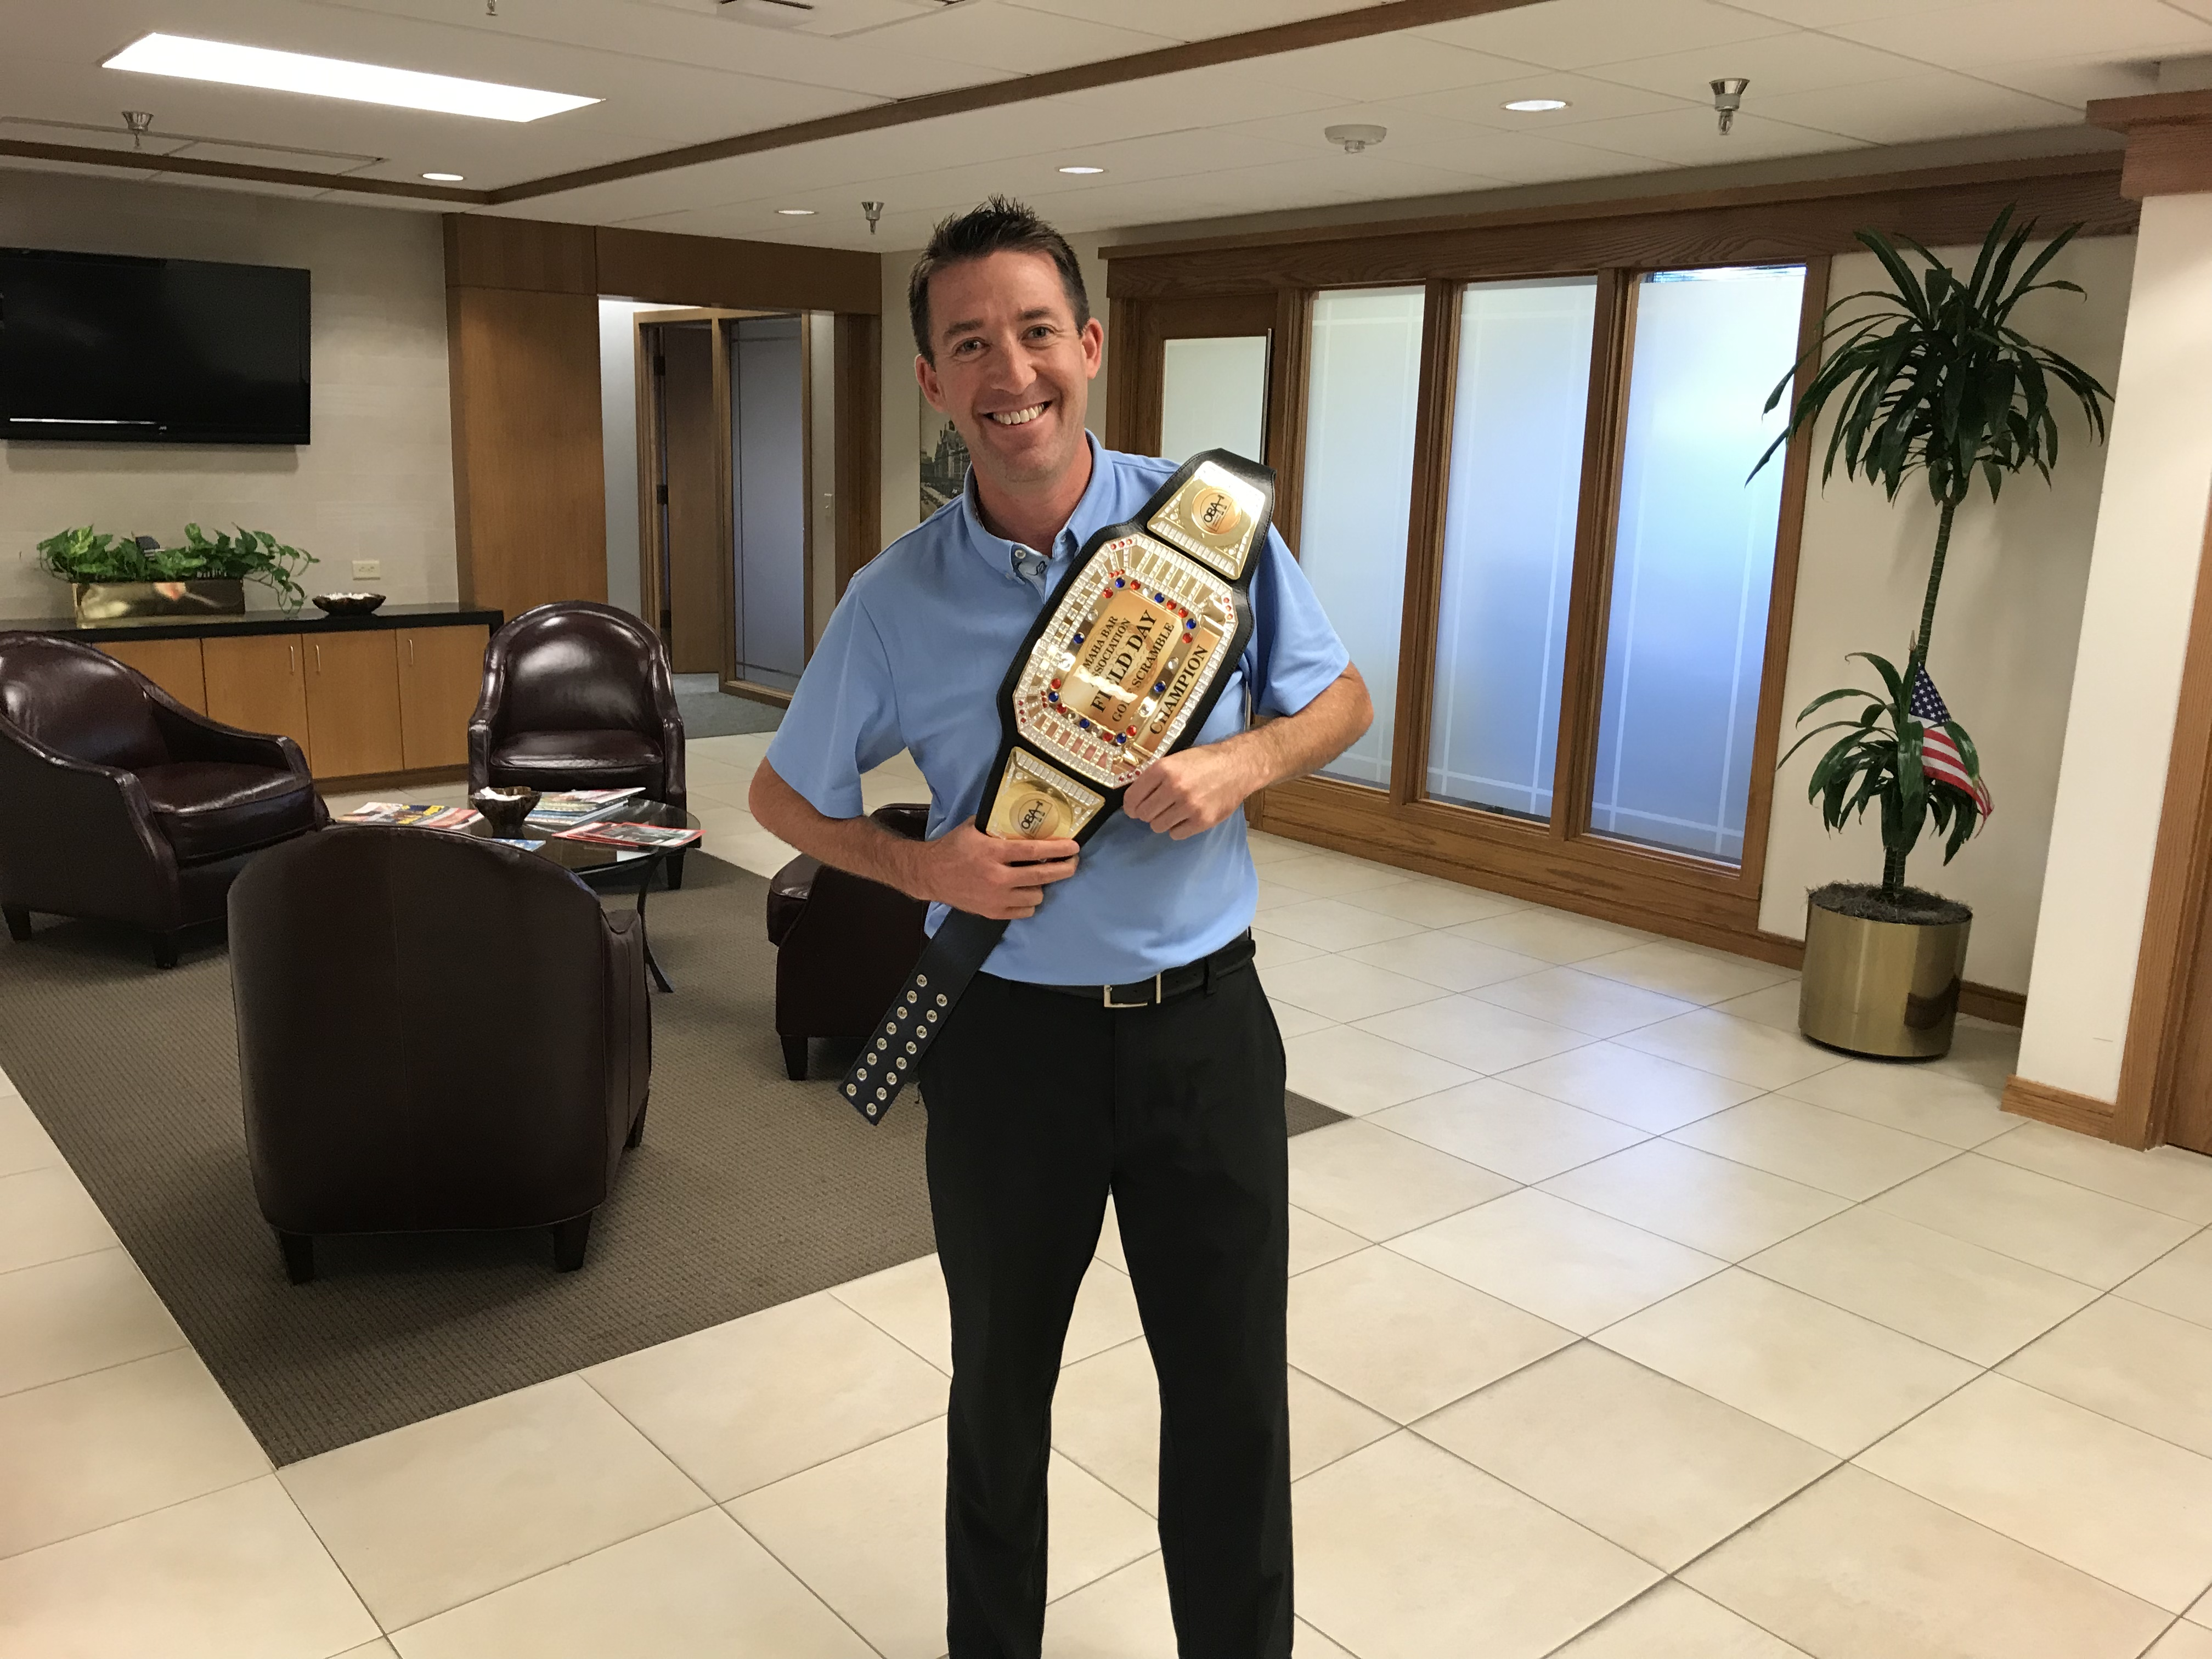 Shay Garvin accepted the Omaha Bar Association Field Day golf championship belt on Tuesday, July 23. He accepted the award on behalf of an Erickson | Sederstrom foursome that couldn't stay for Mon-day's dinner. (Courtesy Dave Sommers)